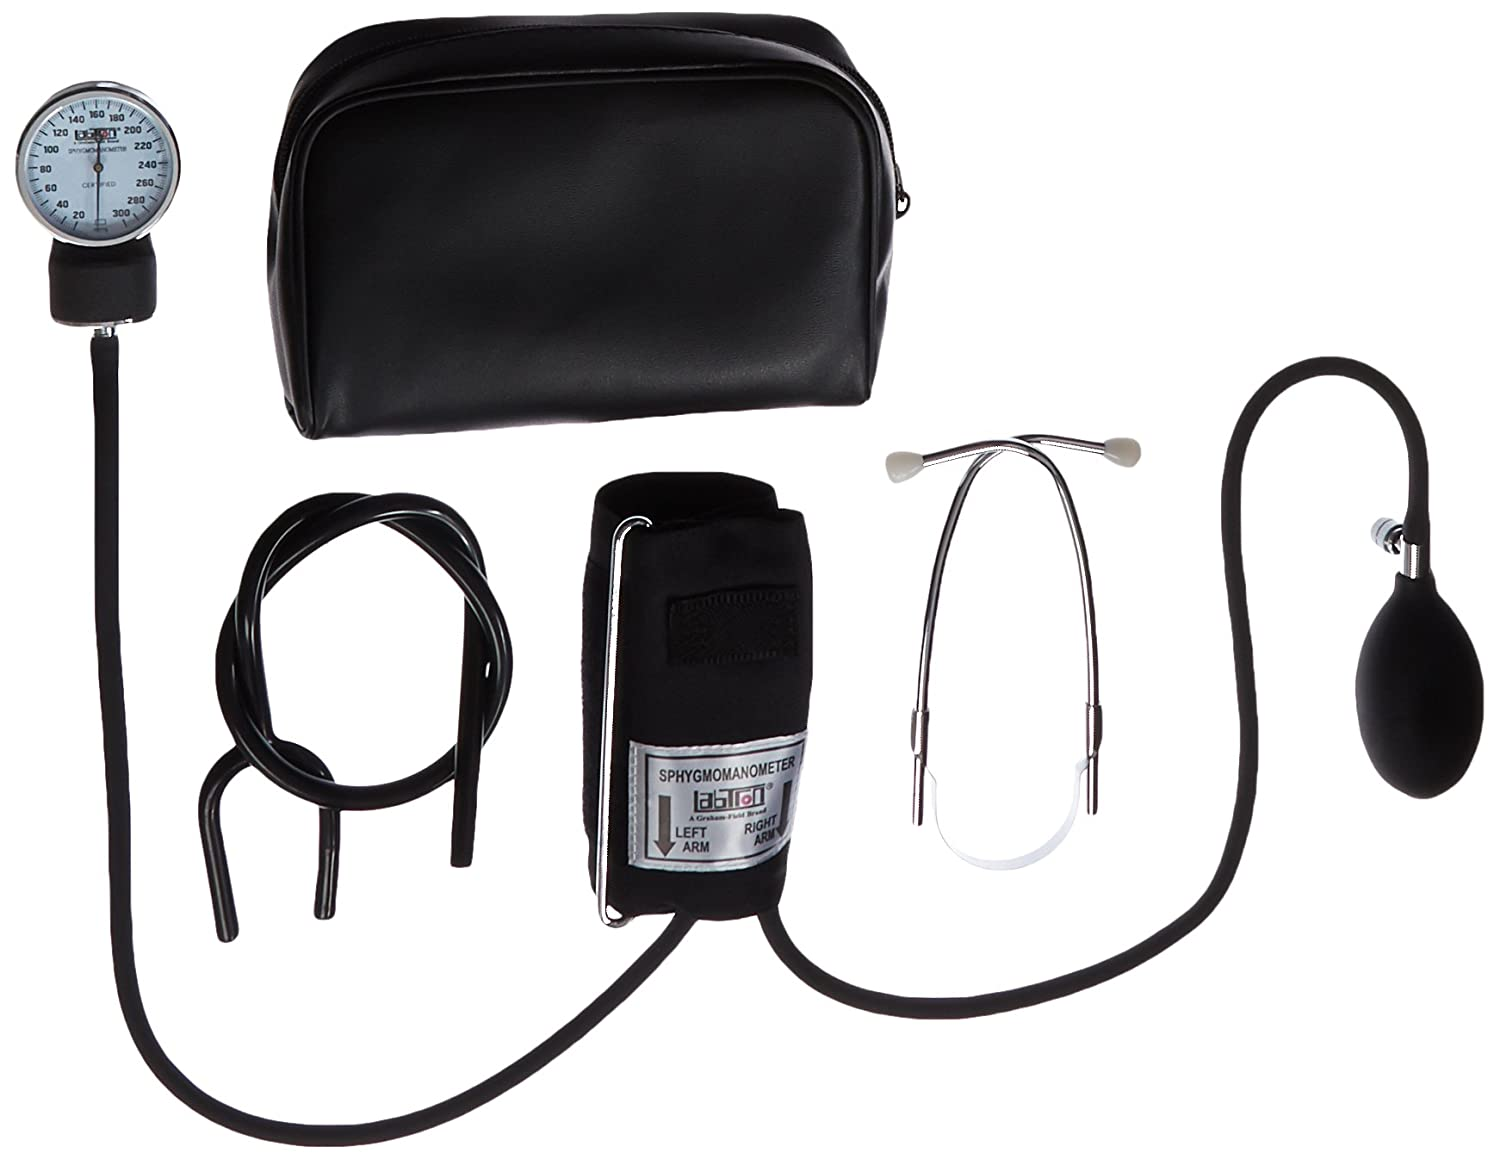 Labtron 242 Home Blood Pressure Kit with Attached Stethoscope, Adult